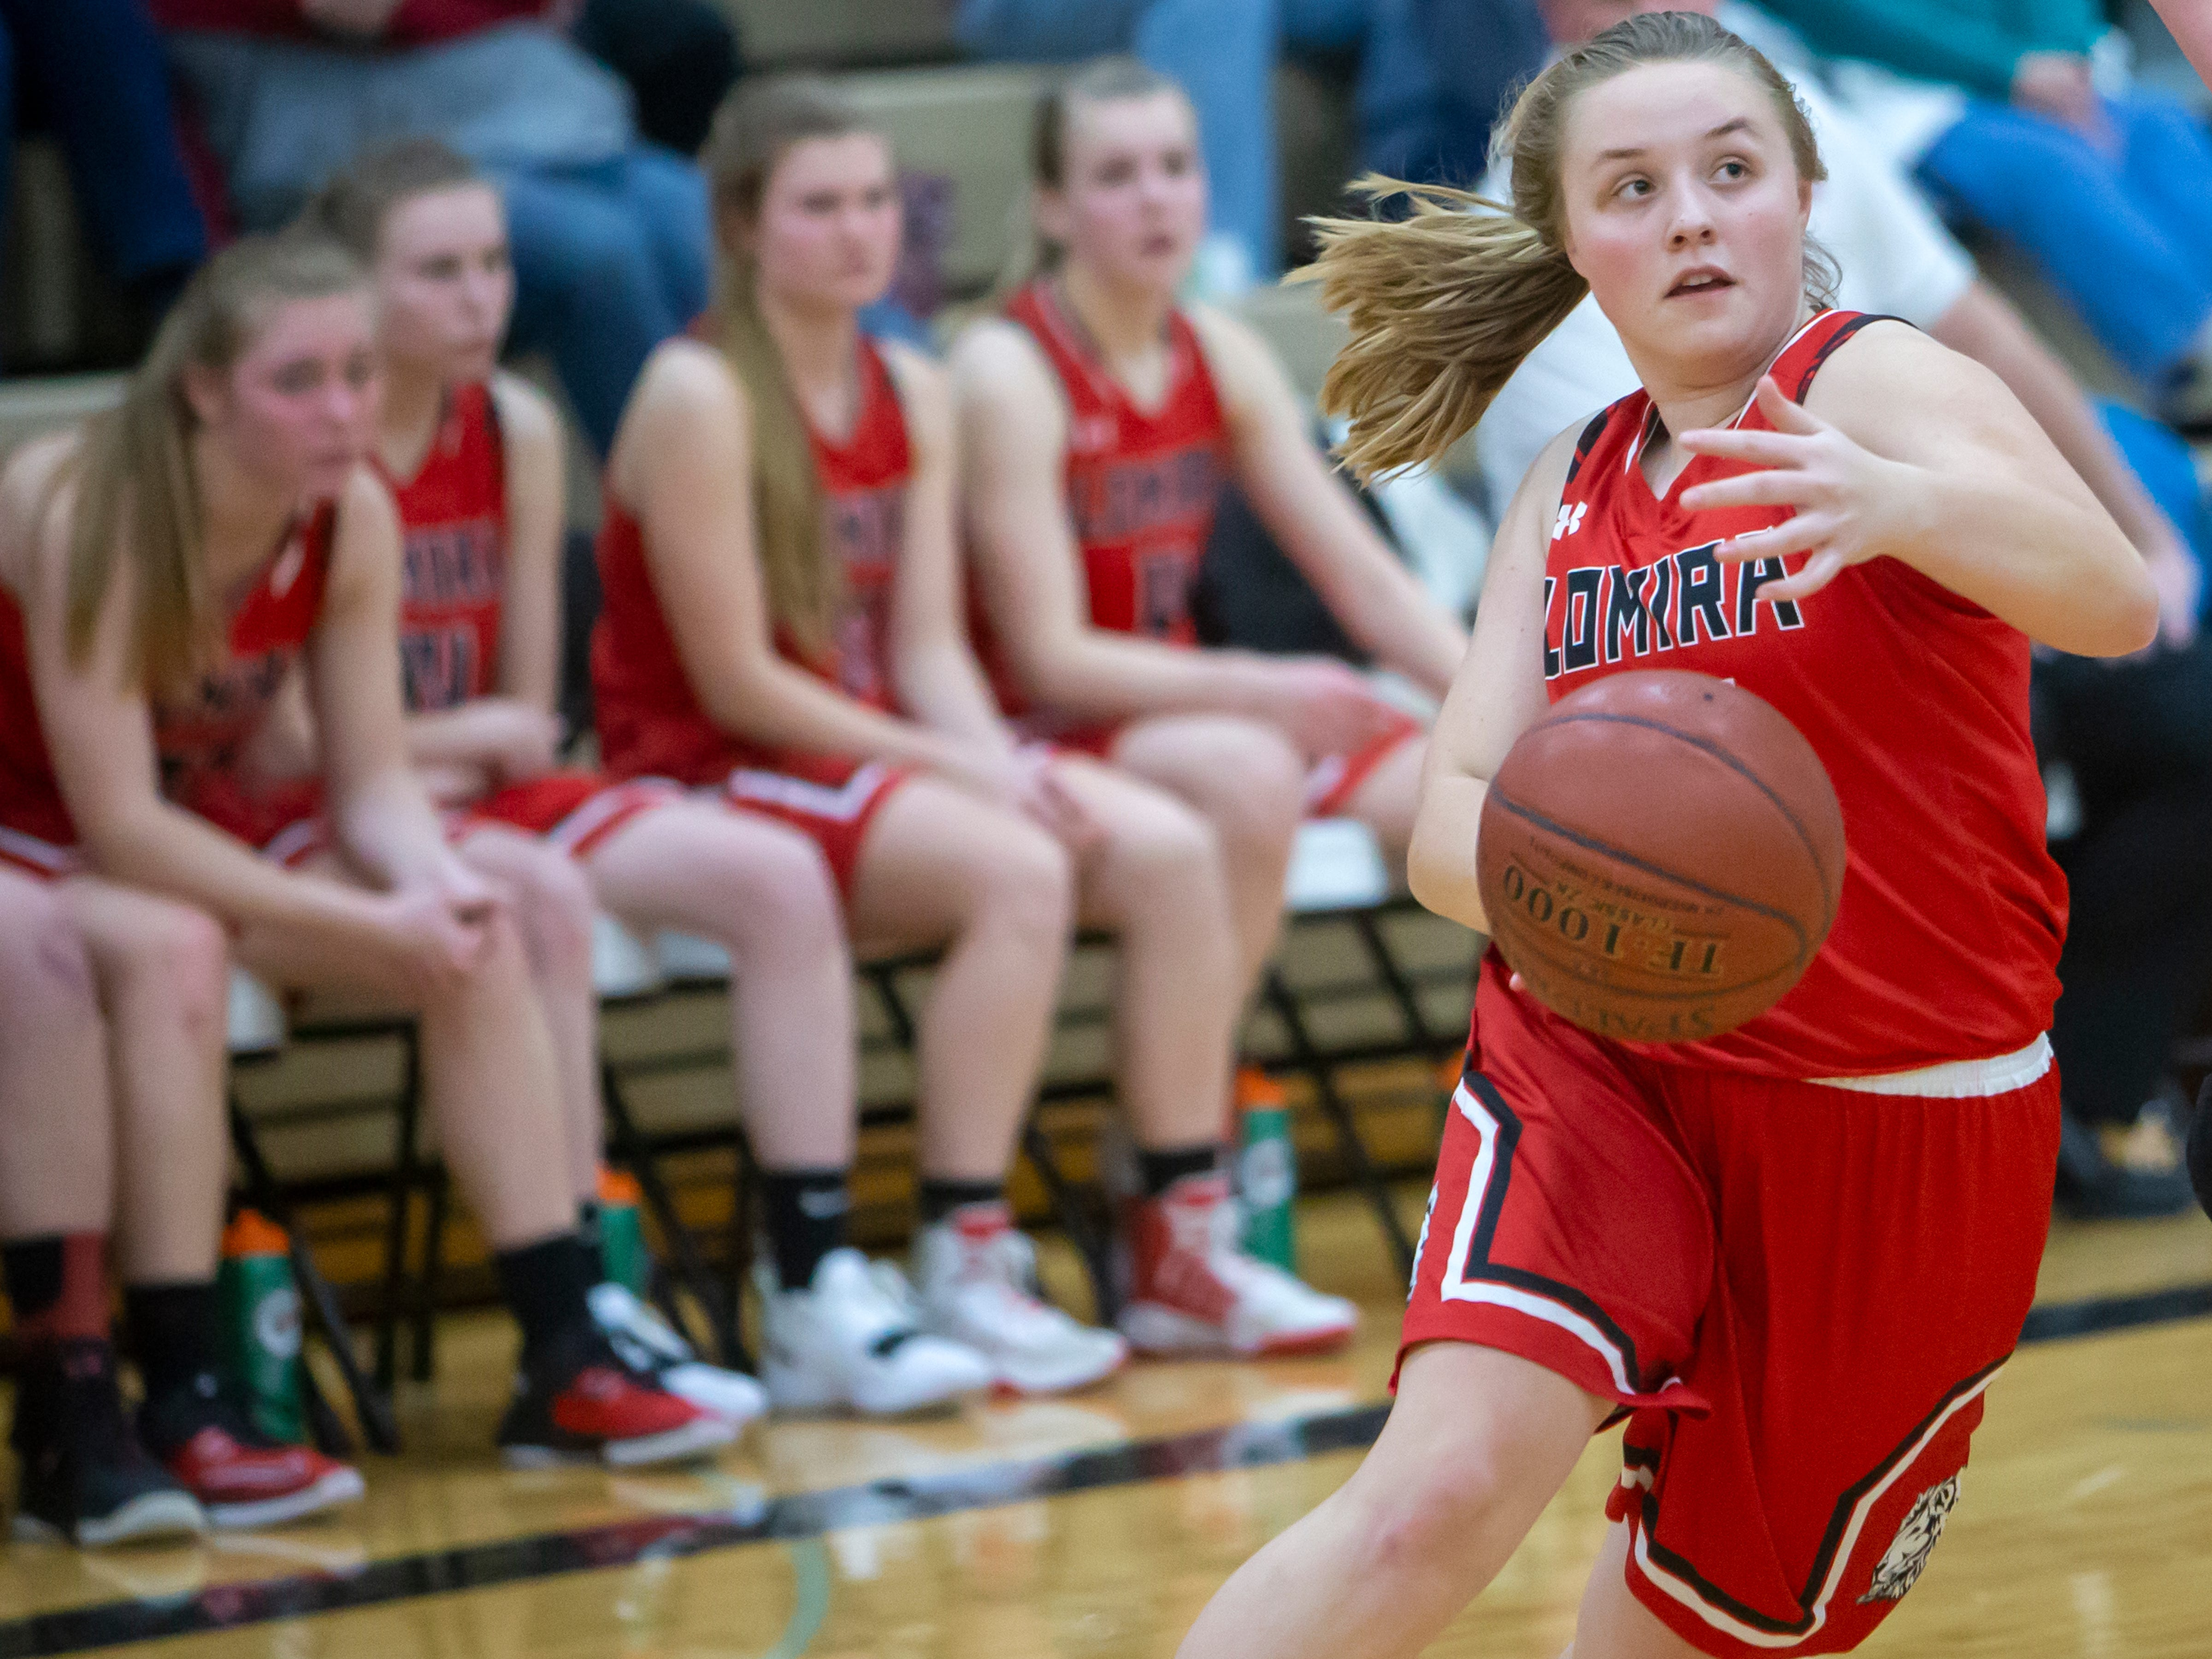 Lomira's Erin Ries drives the ball to the basket at Omro High School playing against the Foxes on Friday, December 14, 2018.